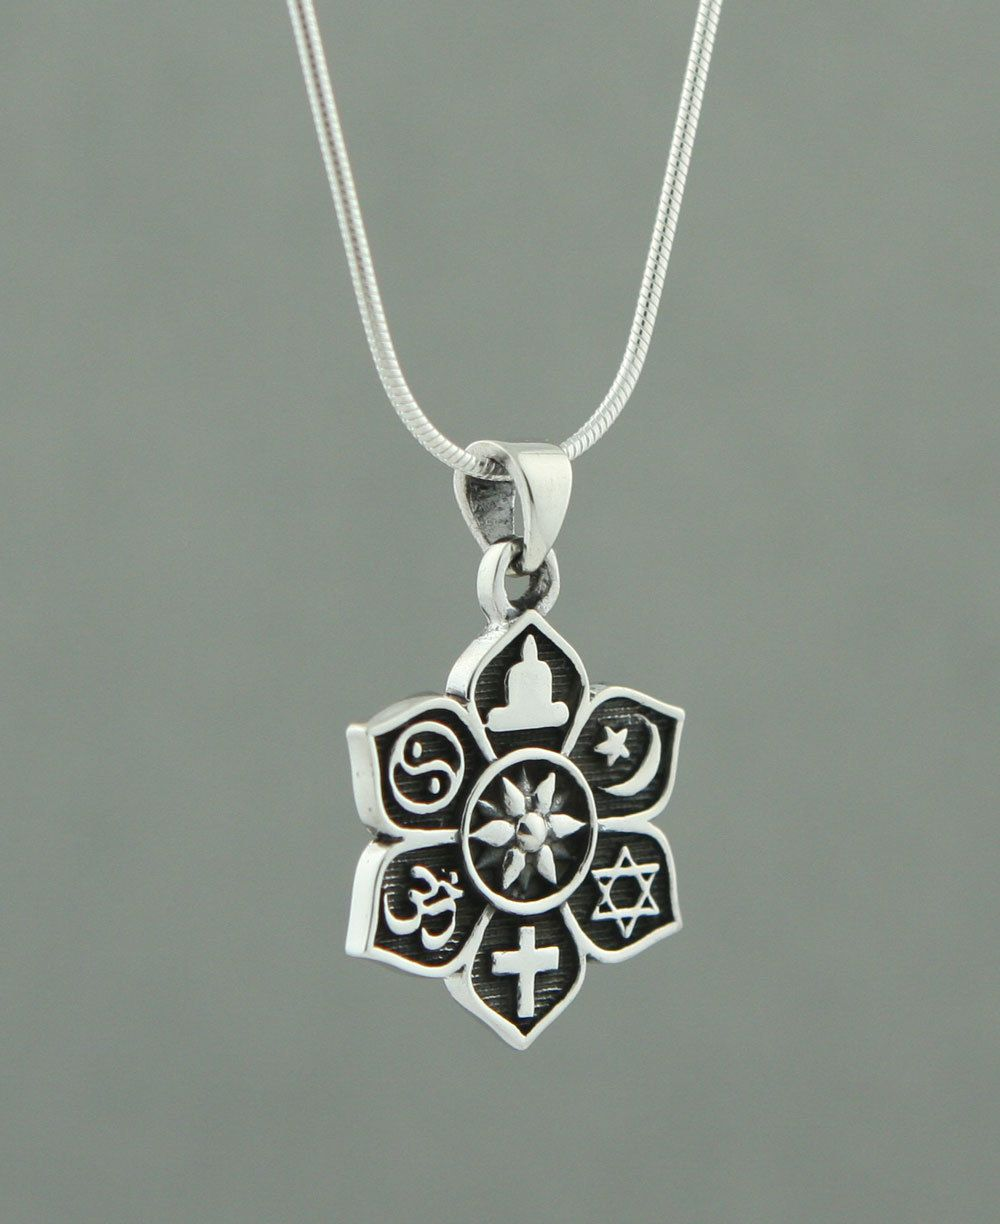 Coexist jewelry most popular and best image jewelry sterling silver coexist harmony pendant lotus design aloadofball Gallery